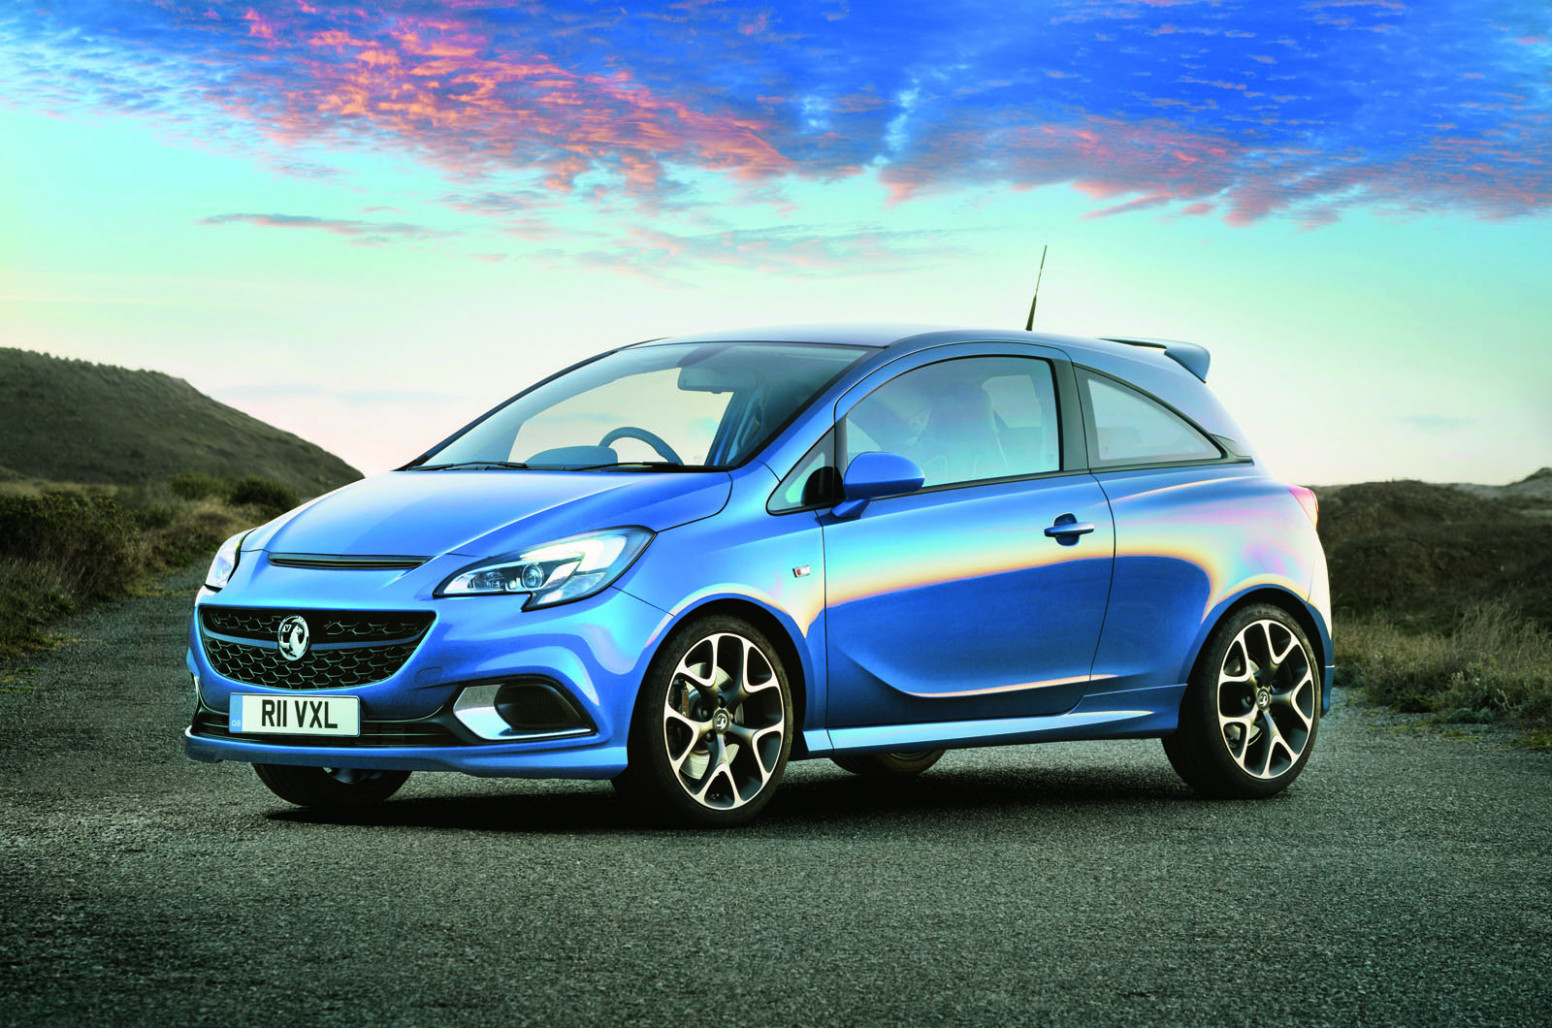 Concept and Review 2022 Vauxhall Corsa VXR